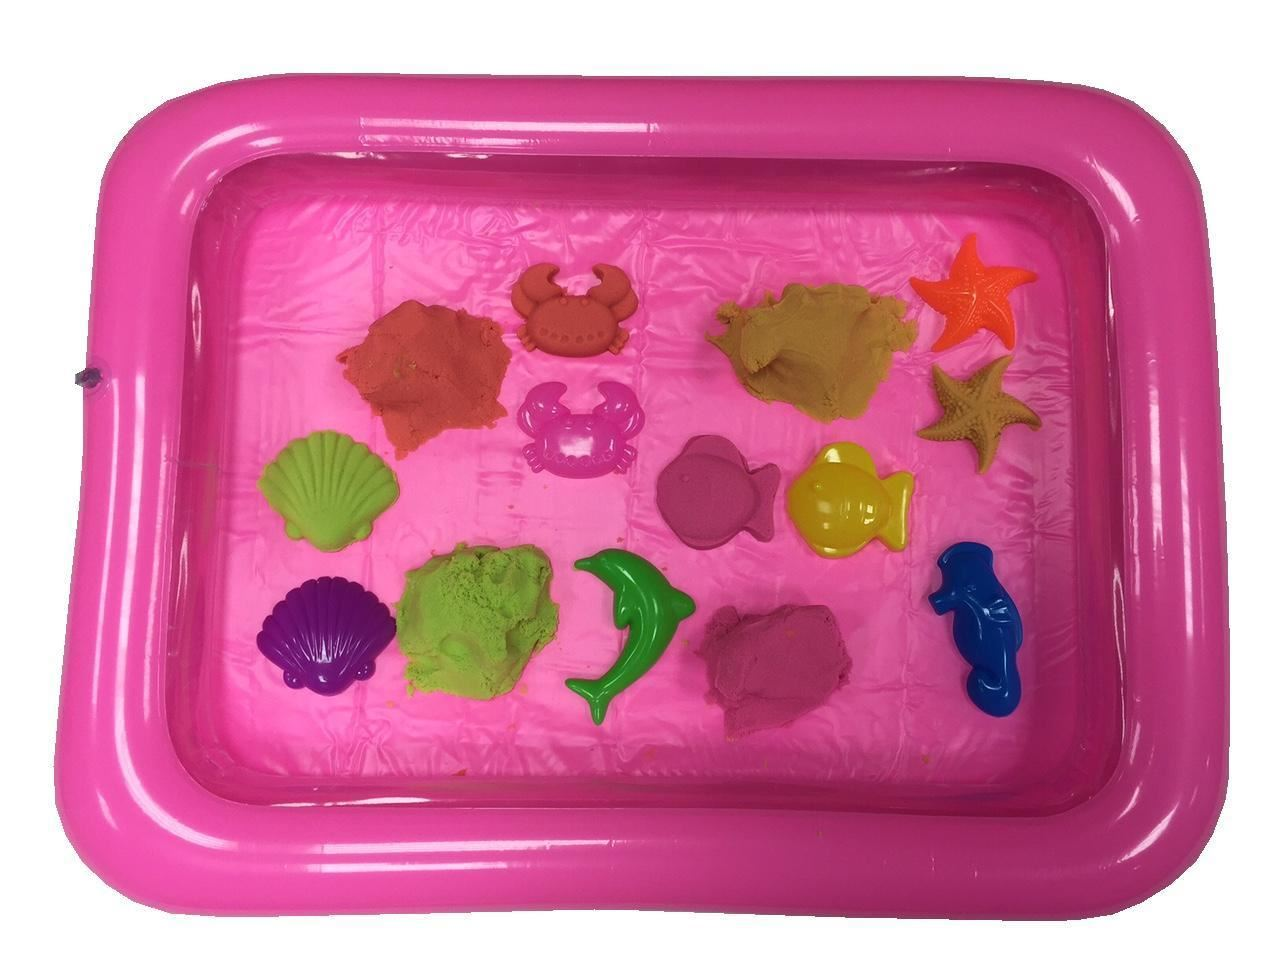 Inflatable-Magic-Motion-Moving-Sand-Blow-Up-Play-Tray-Sandbox-Plate-Kids-Toys